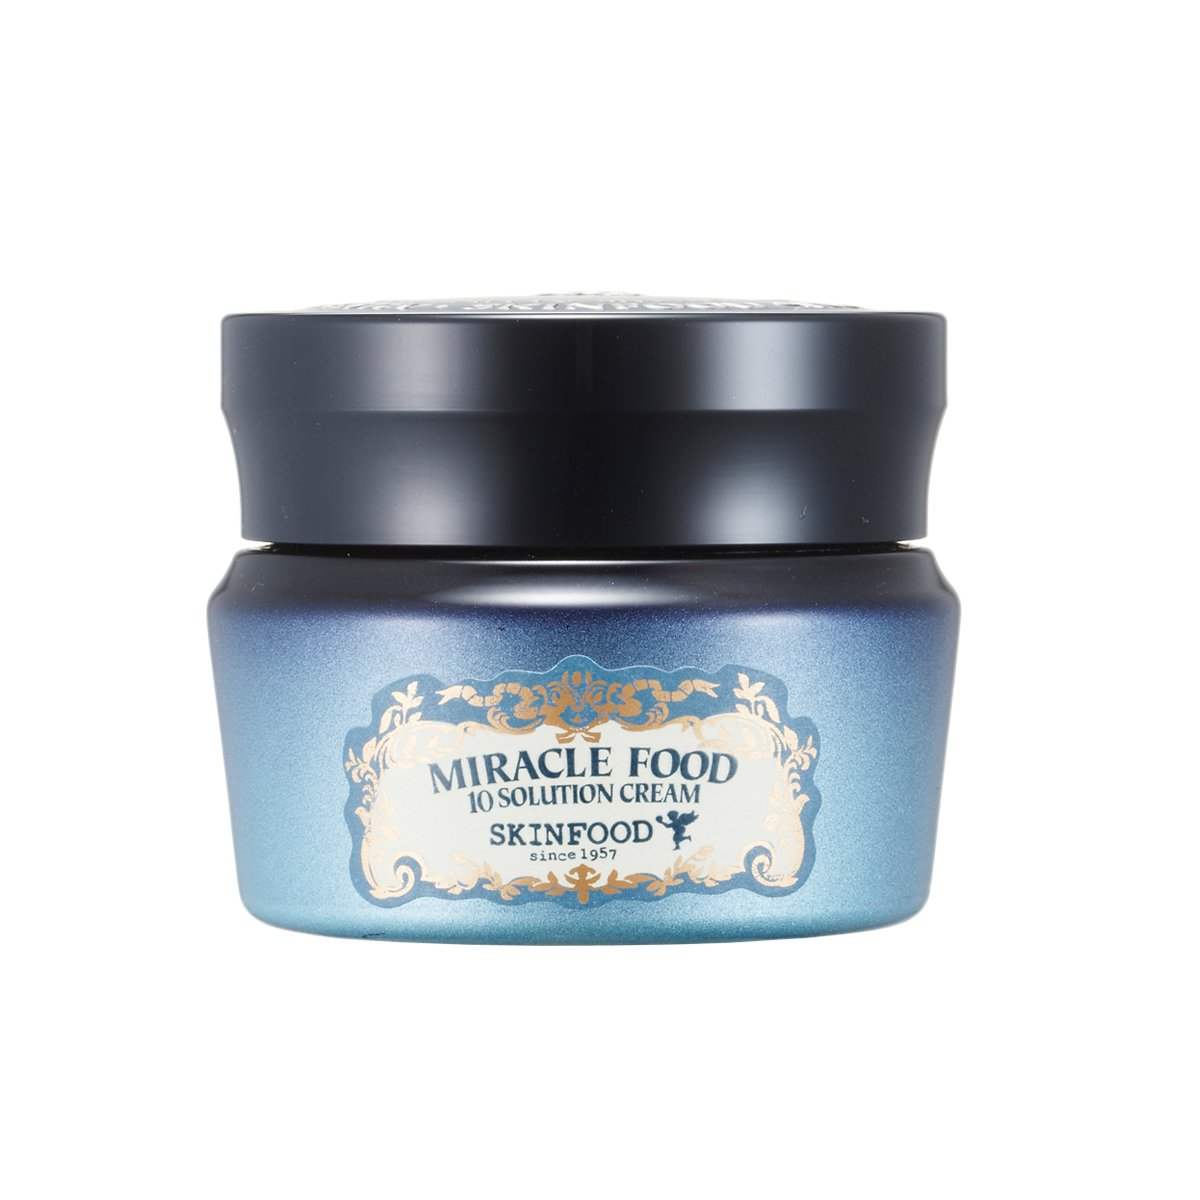 Miracle Food 10 Solution Serum by Skinfood #20